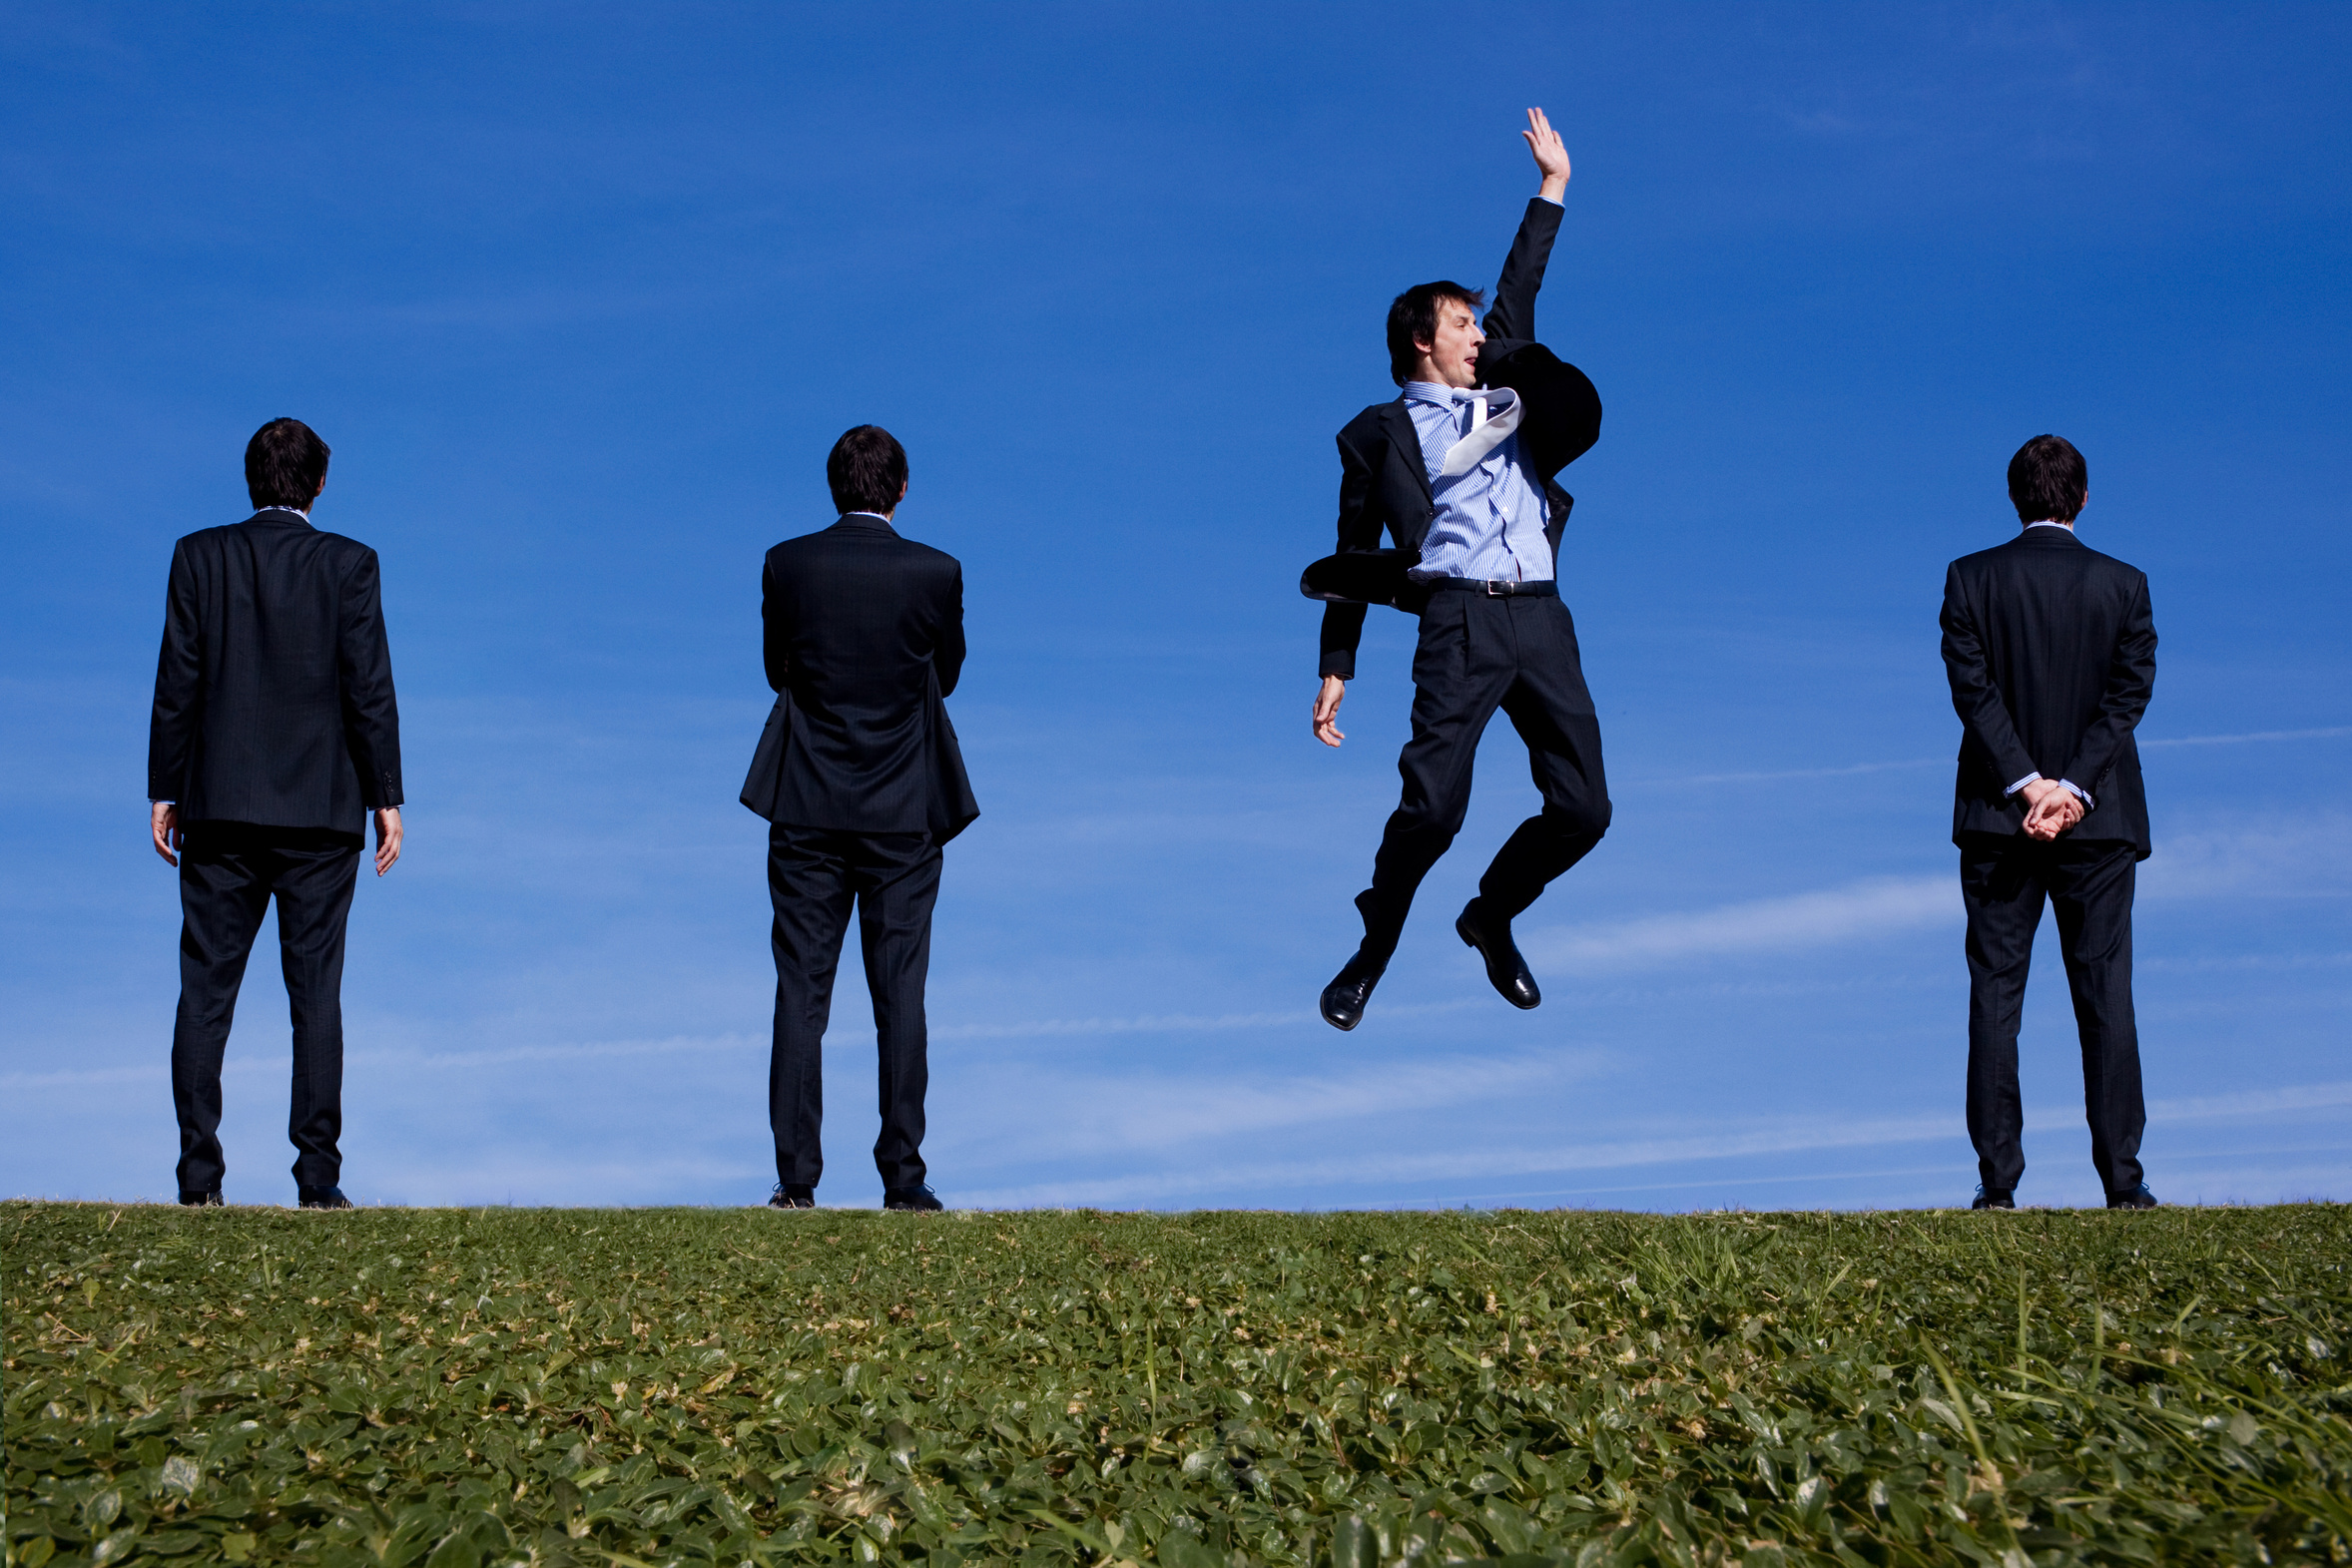 business man jumping. Low stress and happy